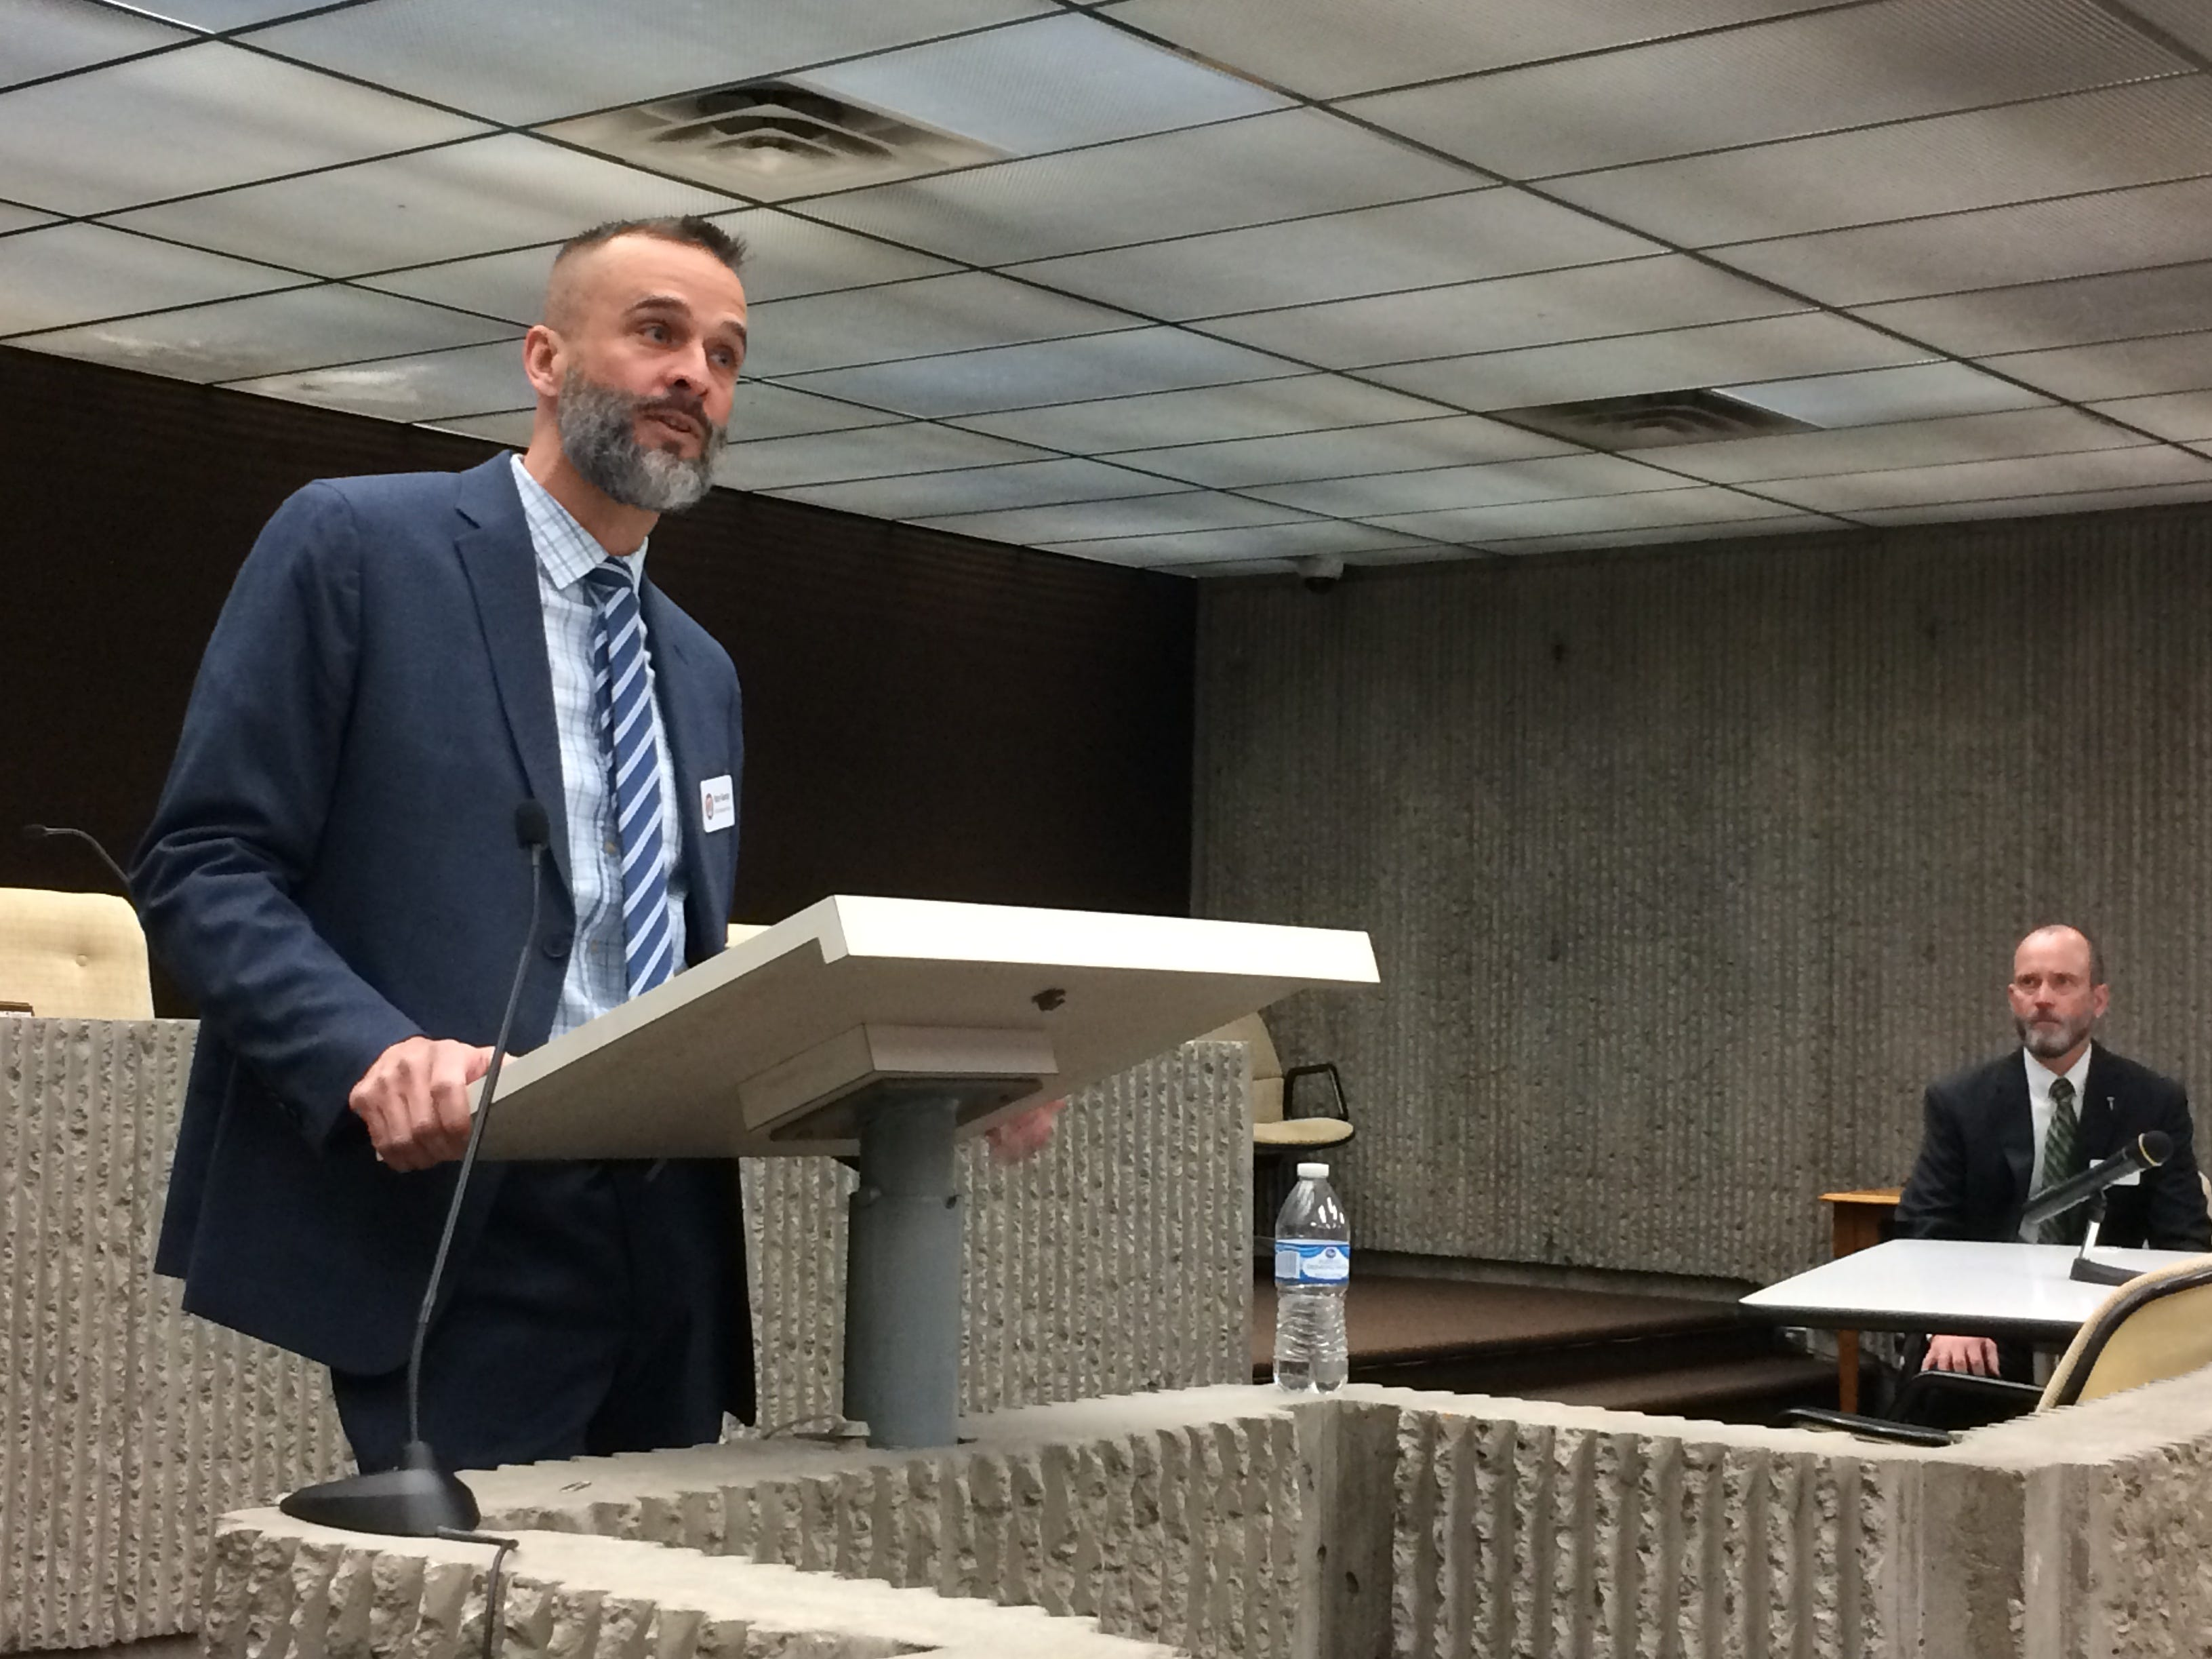 Kory George, Wayne County's chief probation officer, speaks during an expanded Juvenile Detention Alternatives Initiative steering committee meeting Wednesday as Judge Darrin Dolehanty listens.